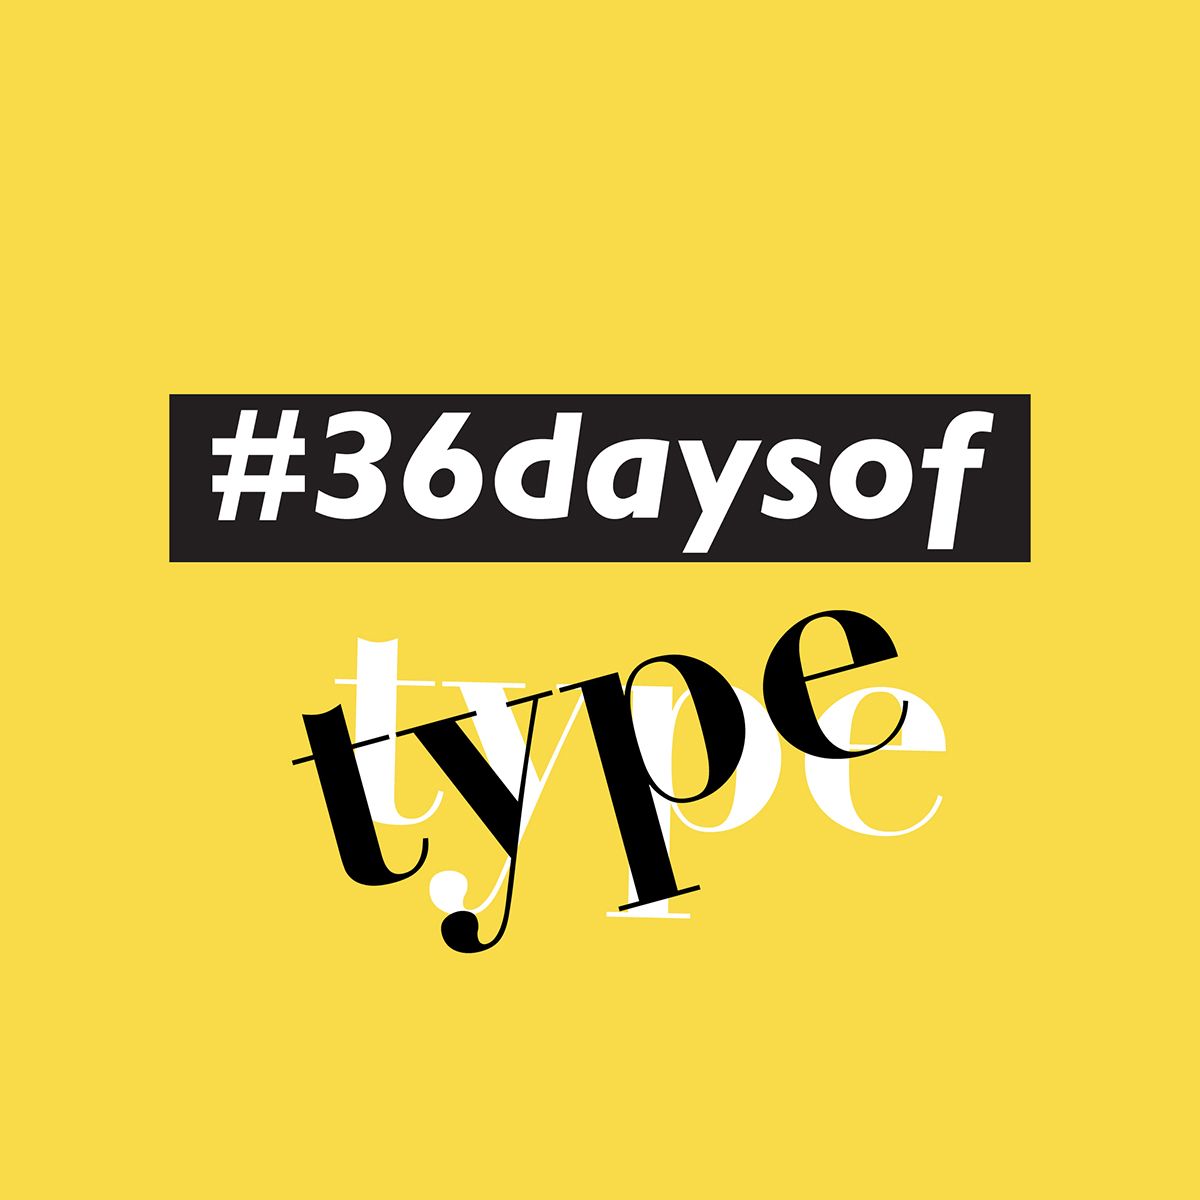 36daystype